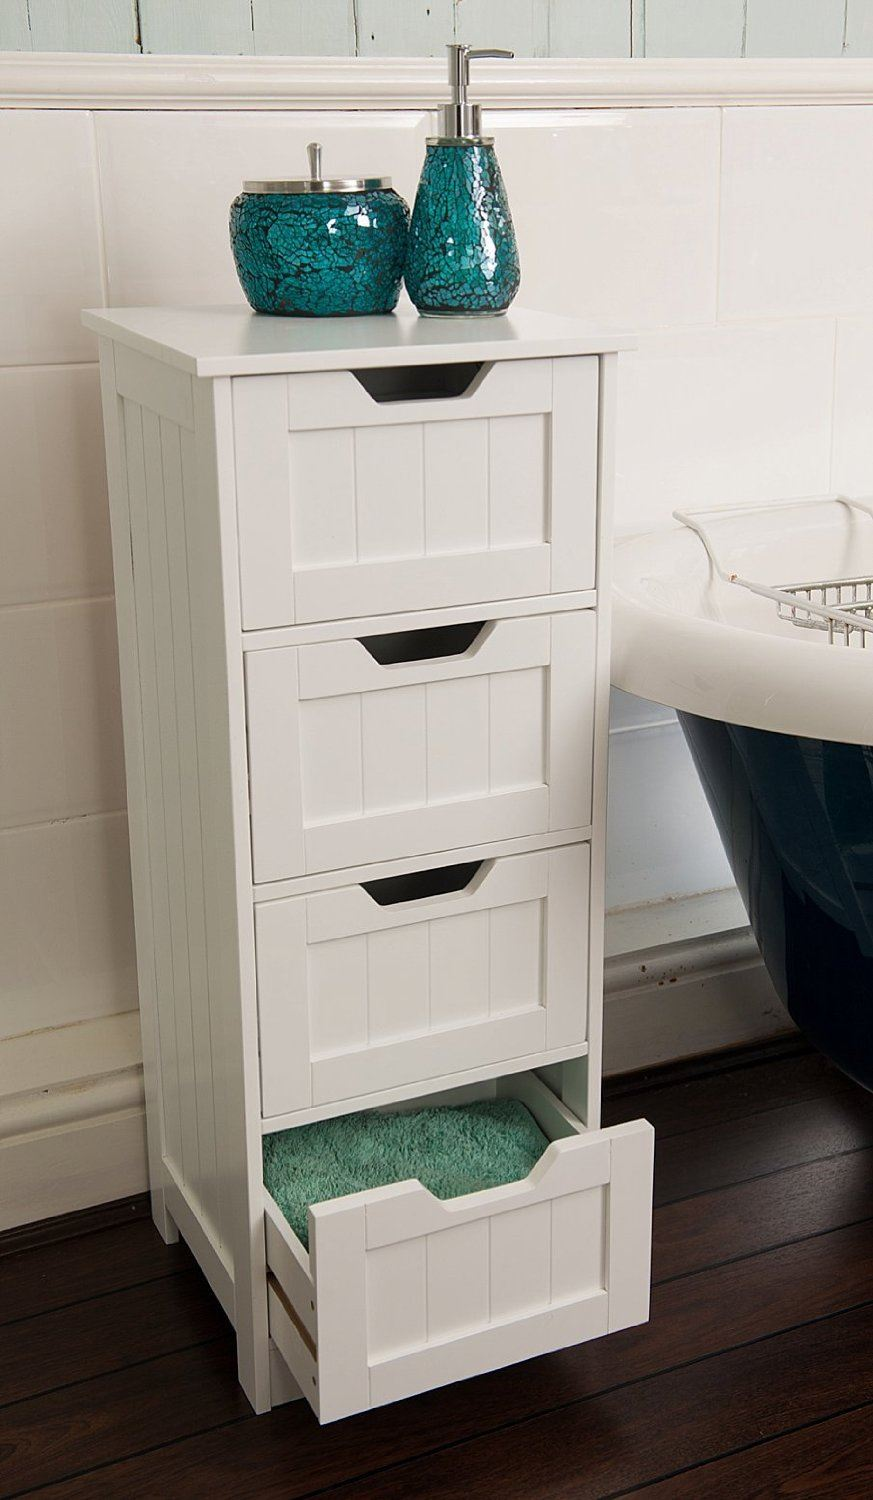 New free standing bathroom unit white wooden 4 drawer for White wooden bathroom drawers